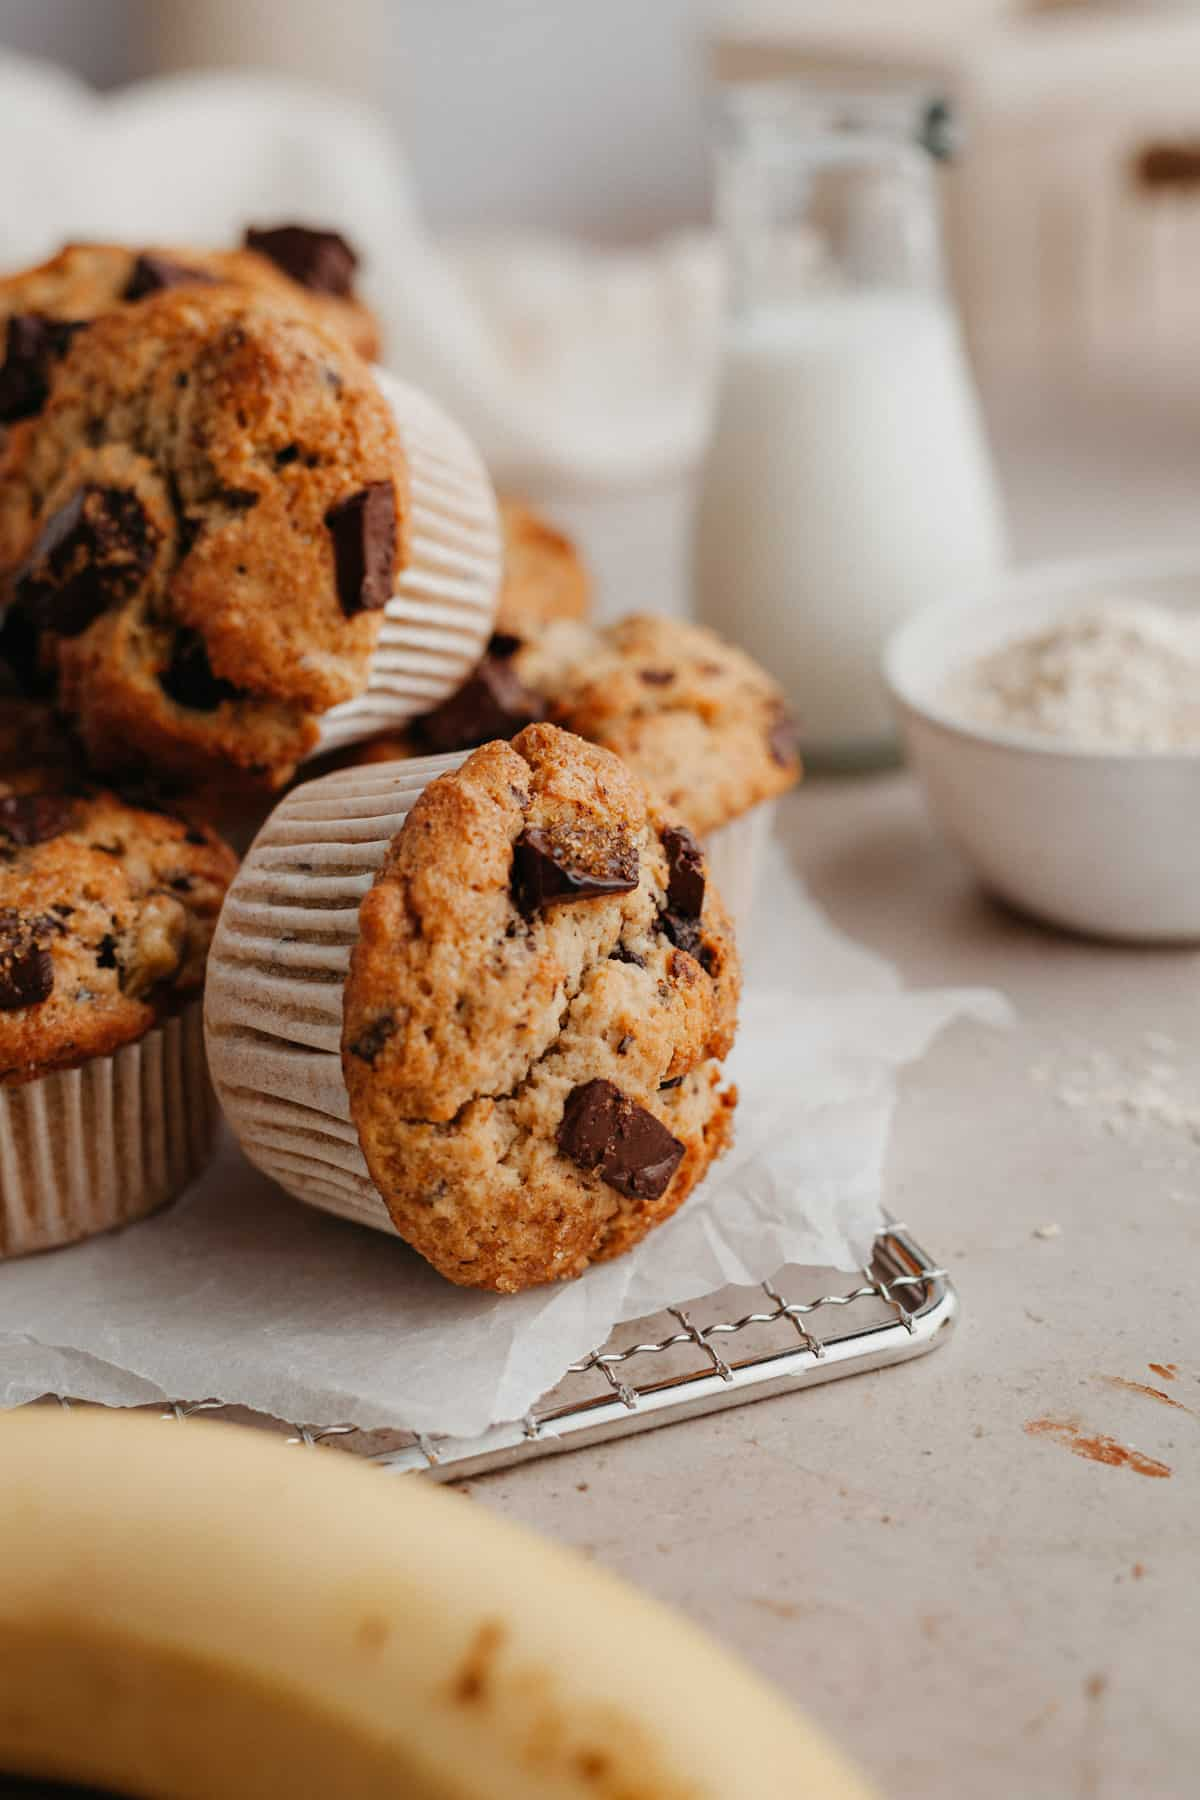 chocolate chunk muffins piled up together on a wire cooling rack